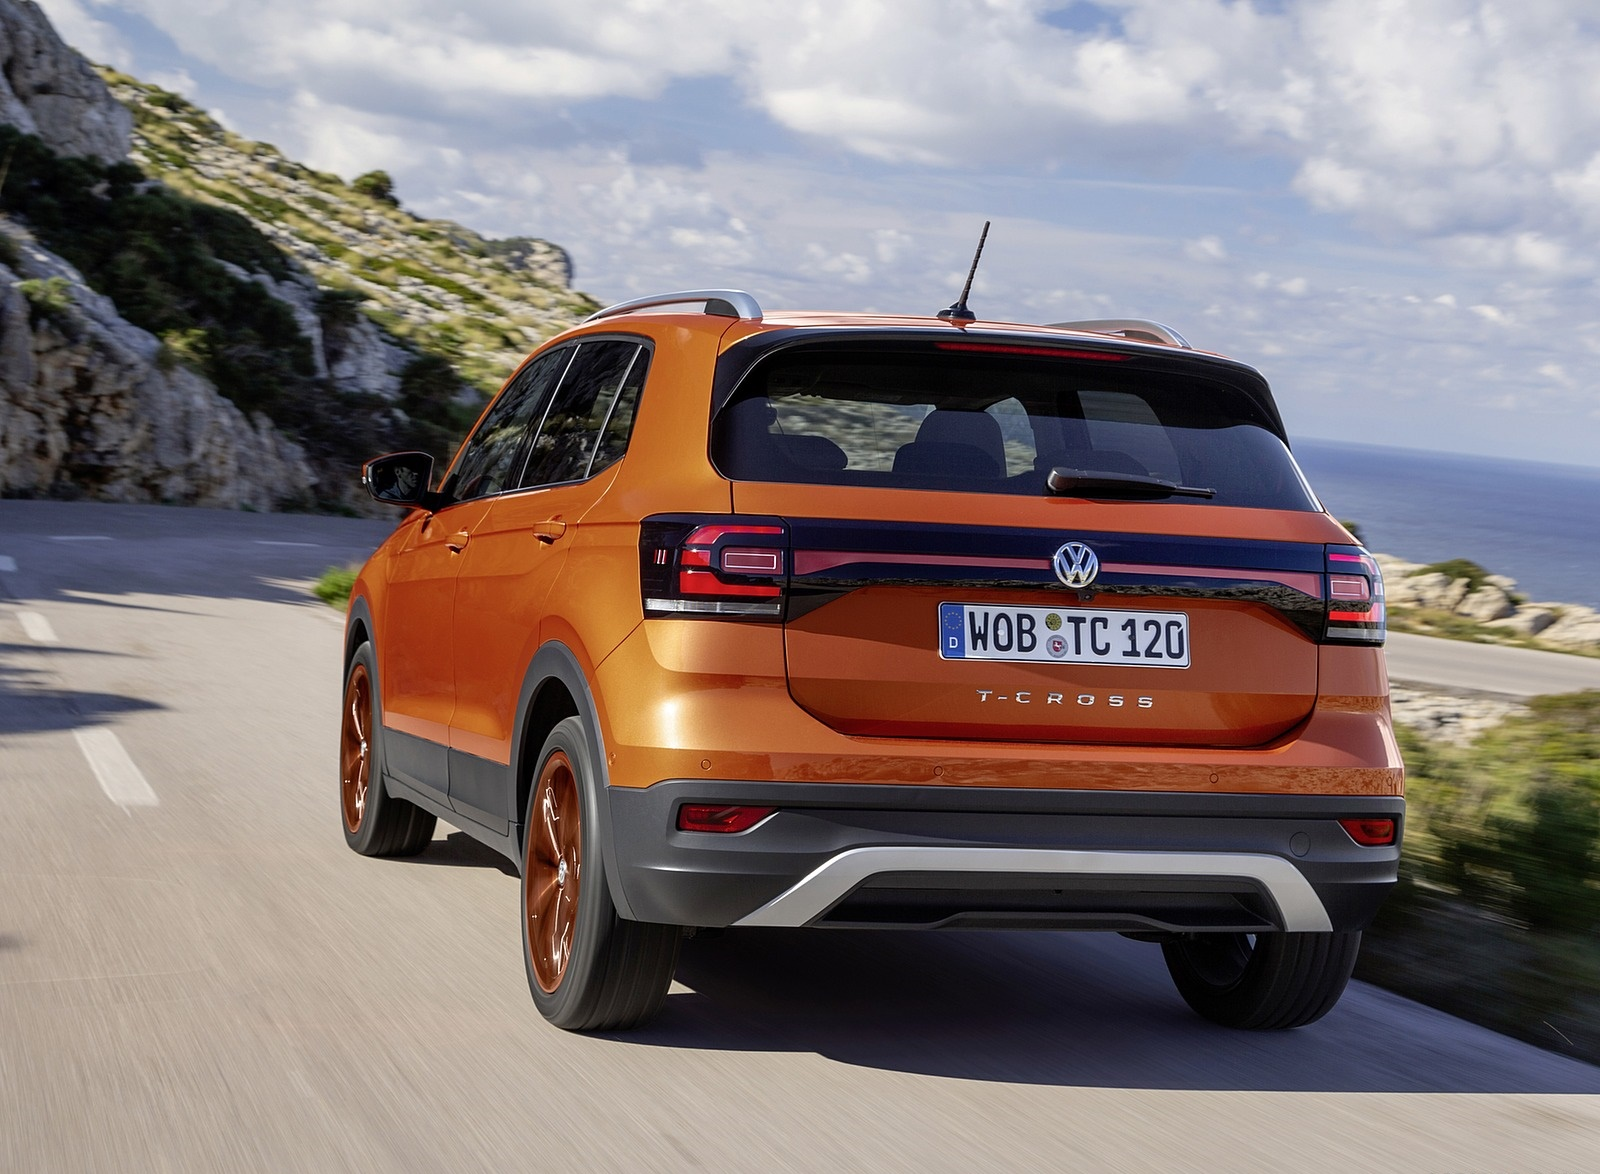 2019 Volkswagen T-Cross Rear Wallpaper (10)